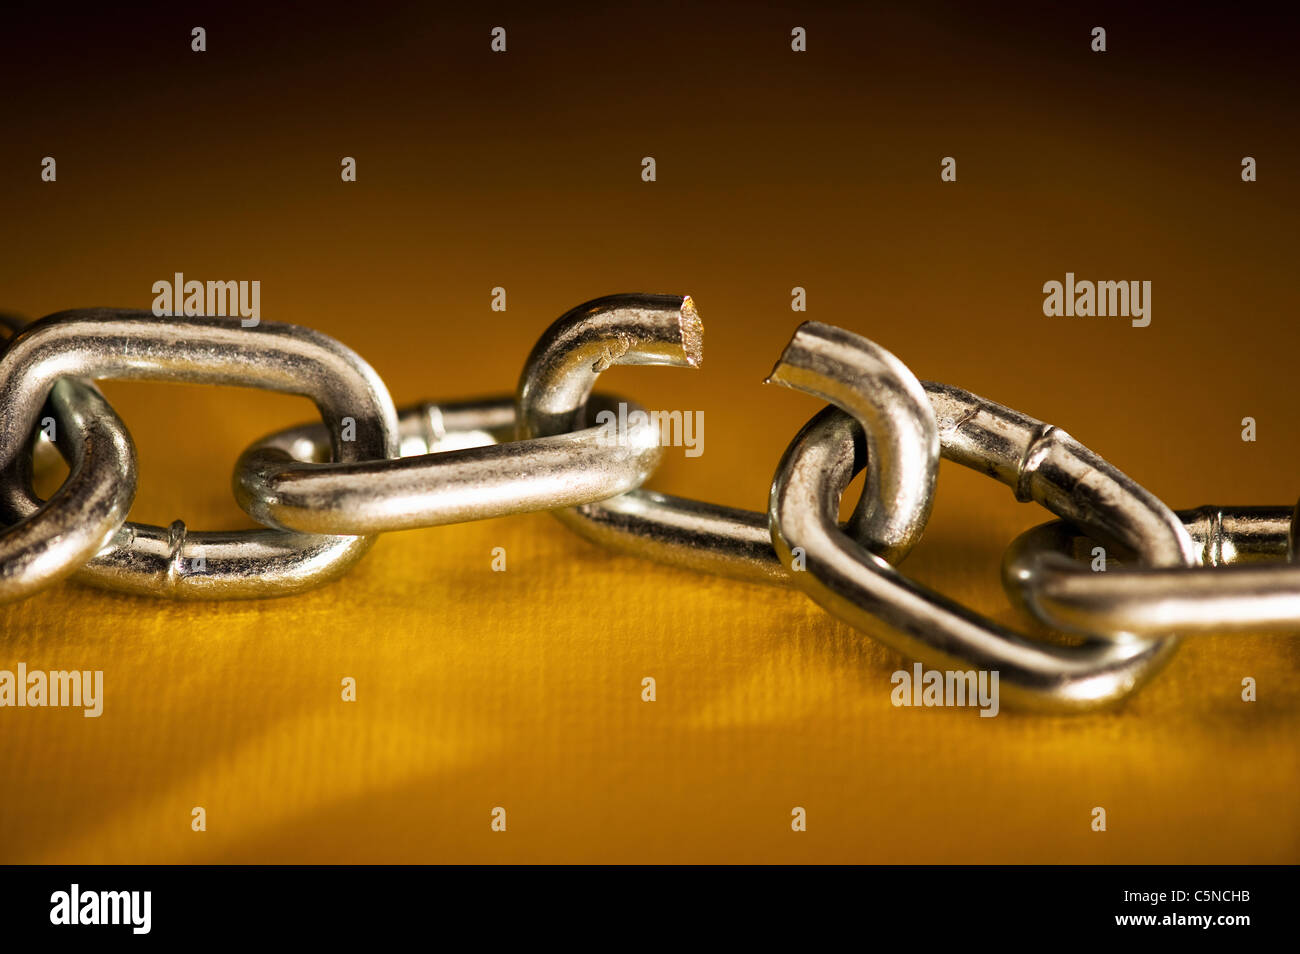 A chain with a broken link - Stock Image